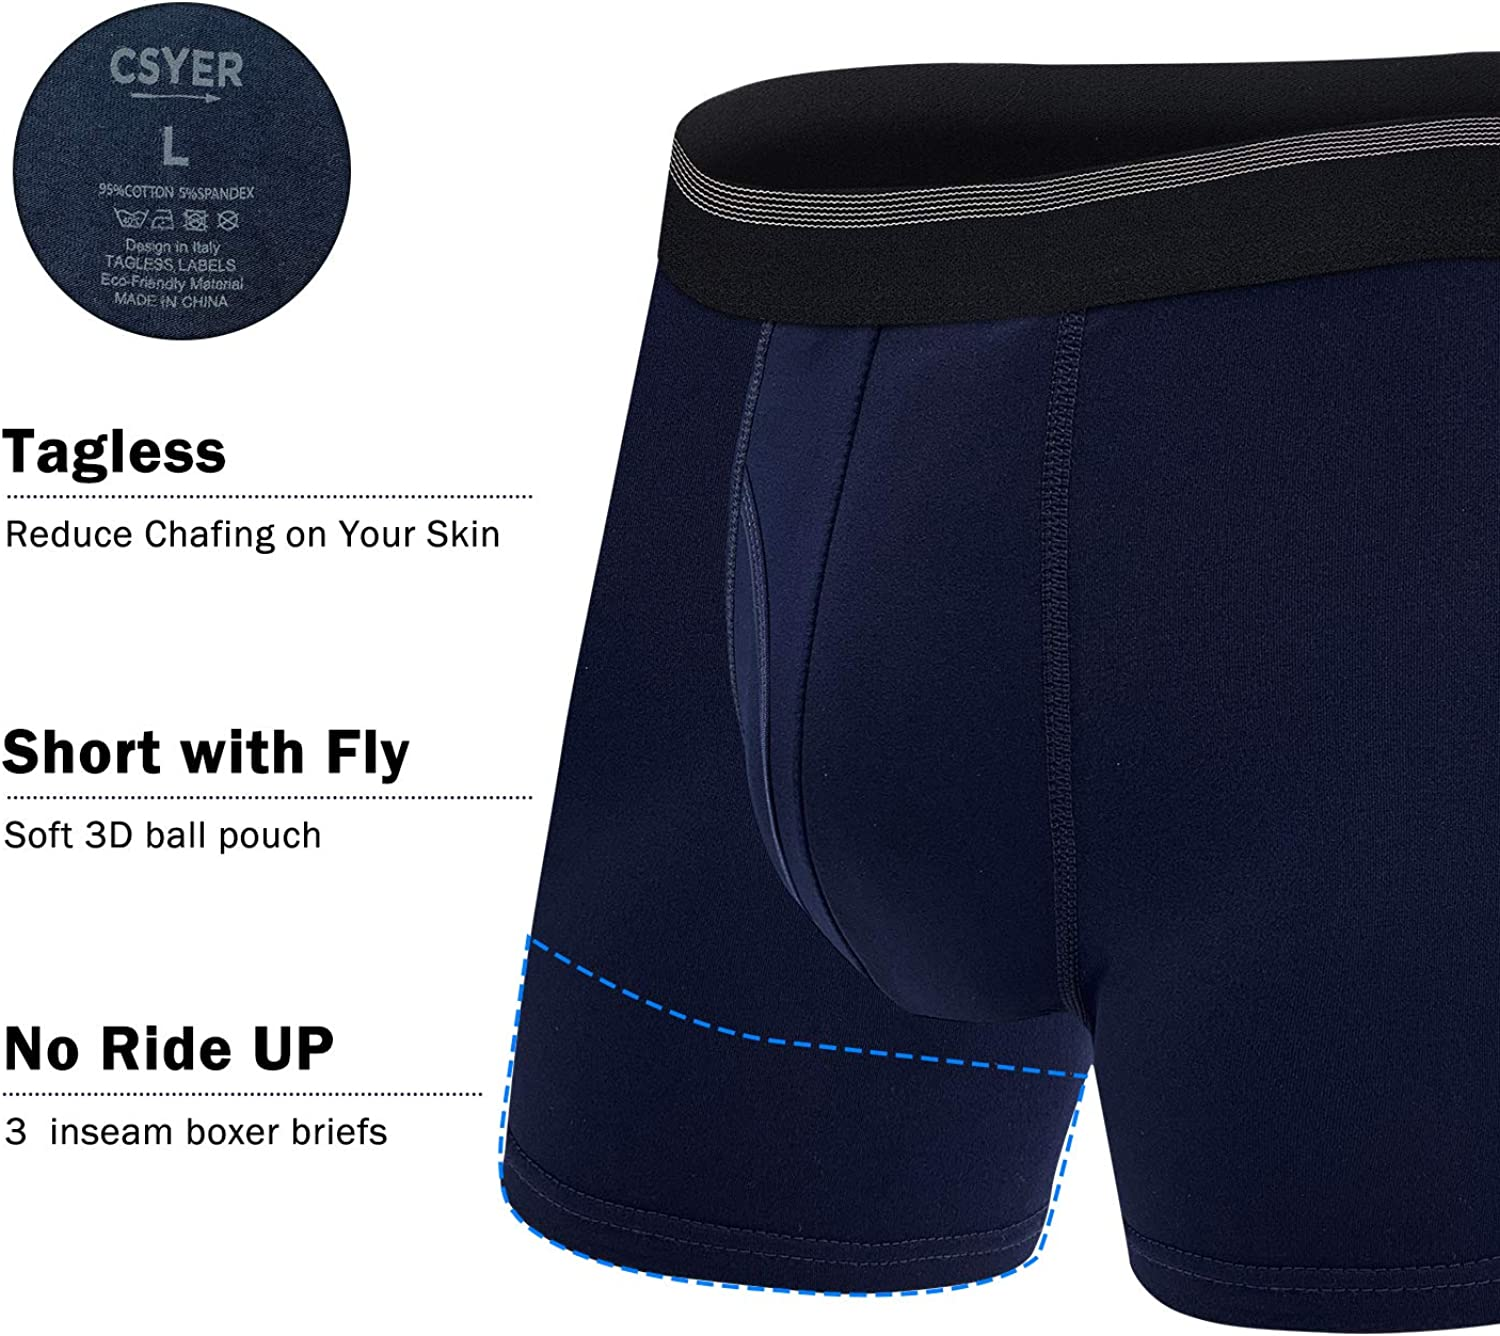 Mens Boxer Briefs Cotton Breathable Comfortable Sport No Ride-up Regular Leg Underwear 5 Pack (B:5 Pairs Multi Color(fly), l)